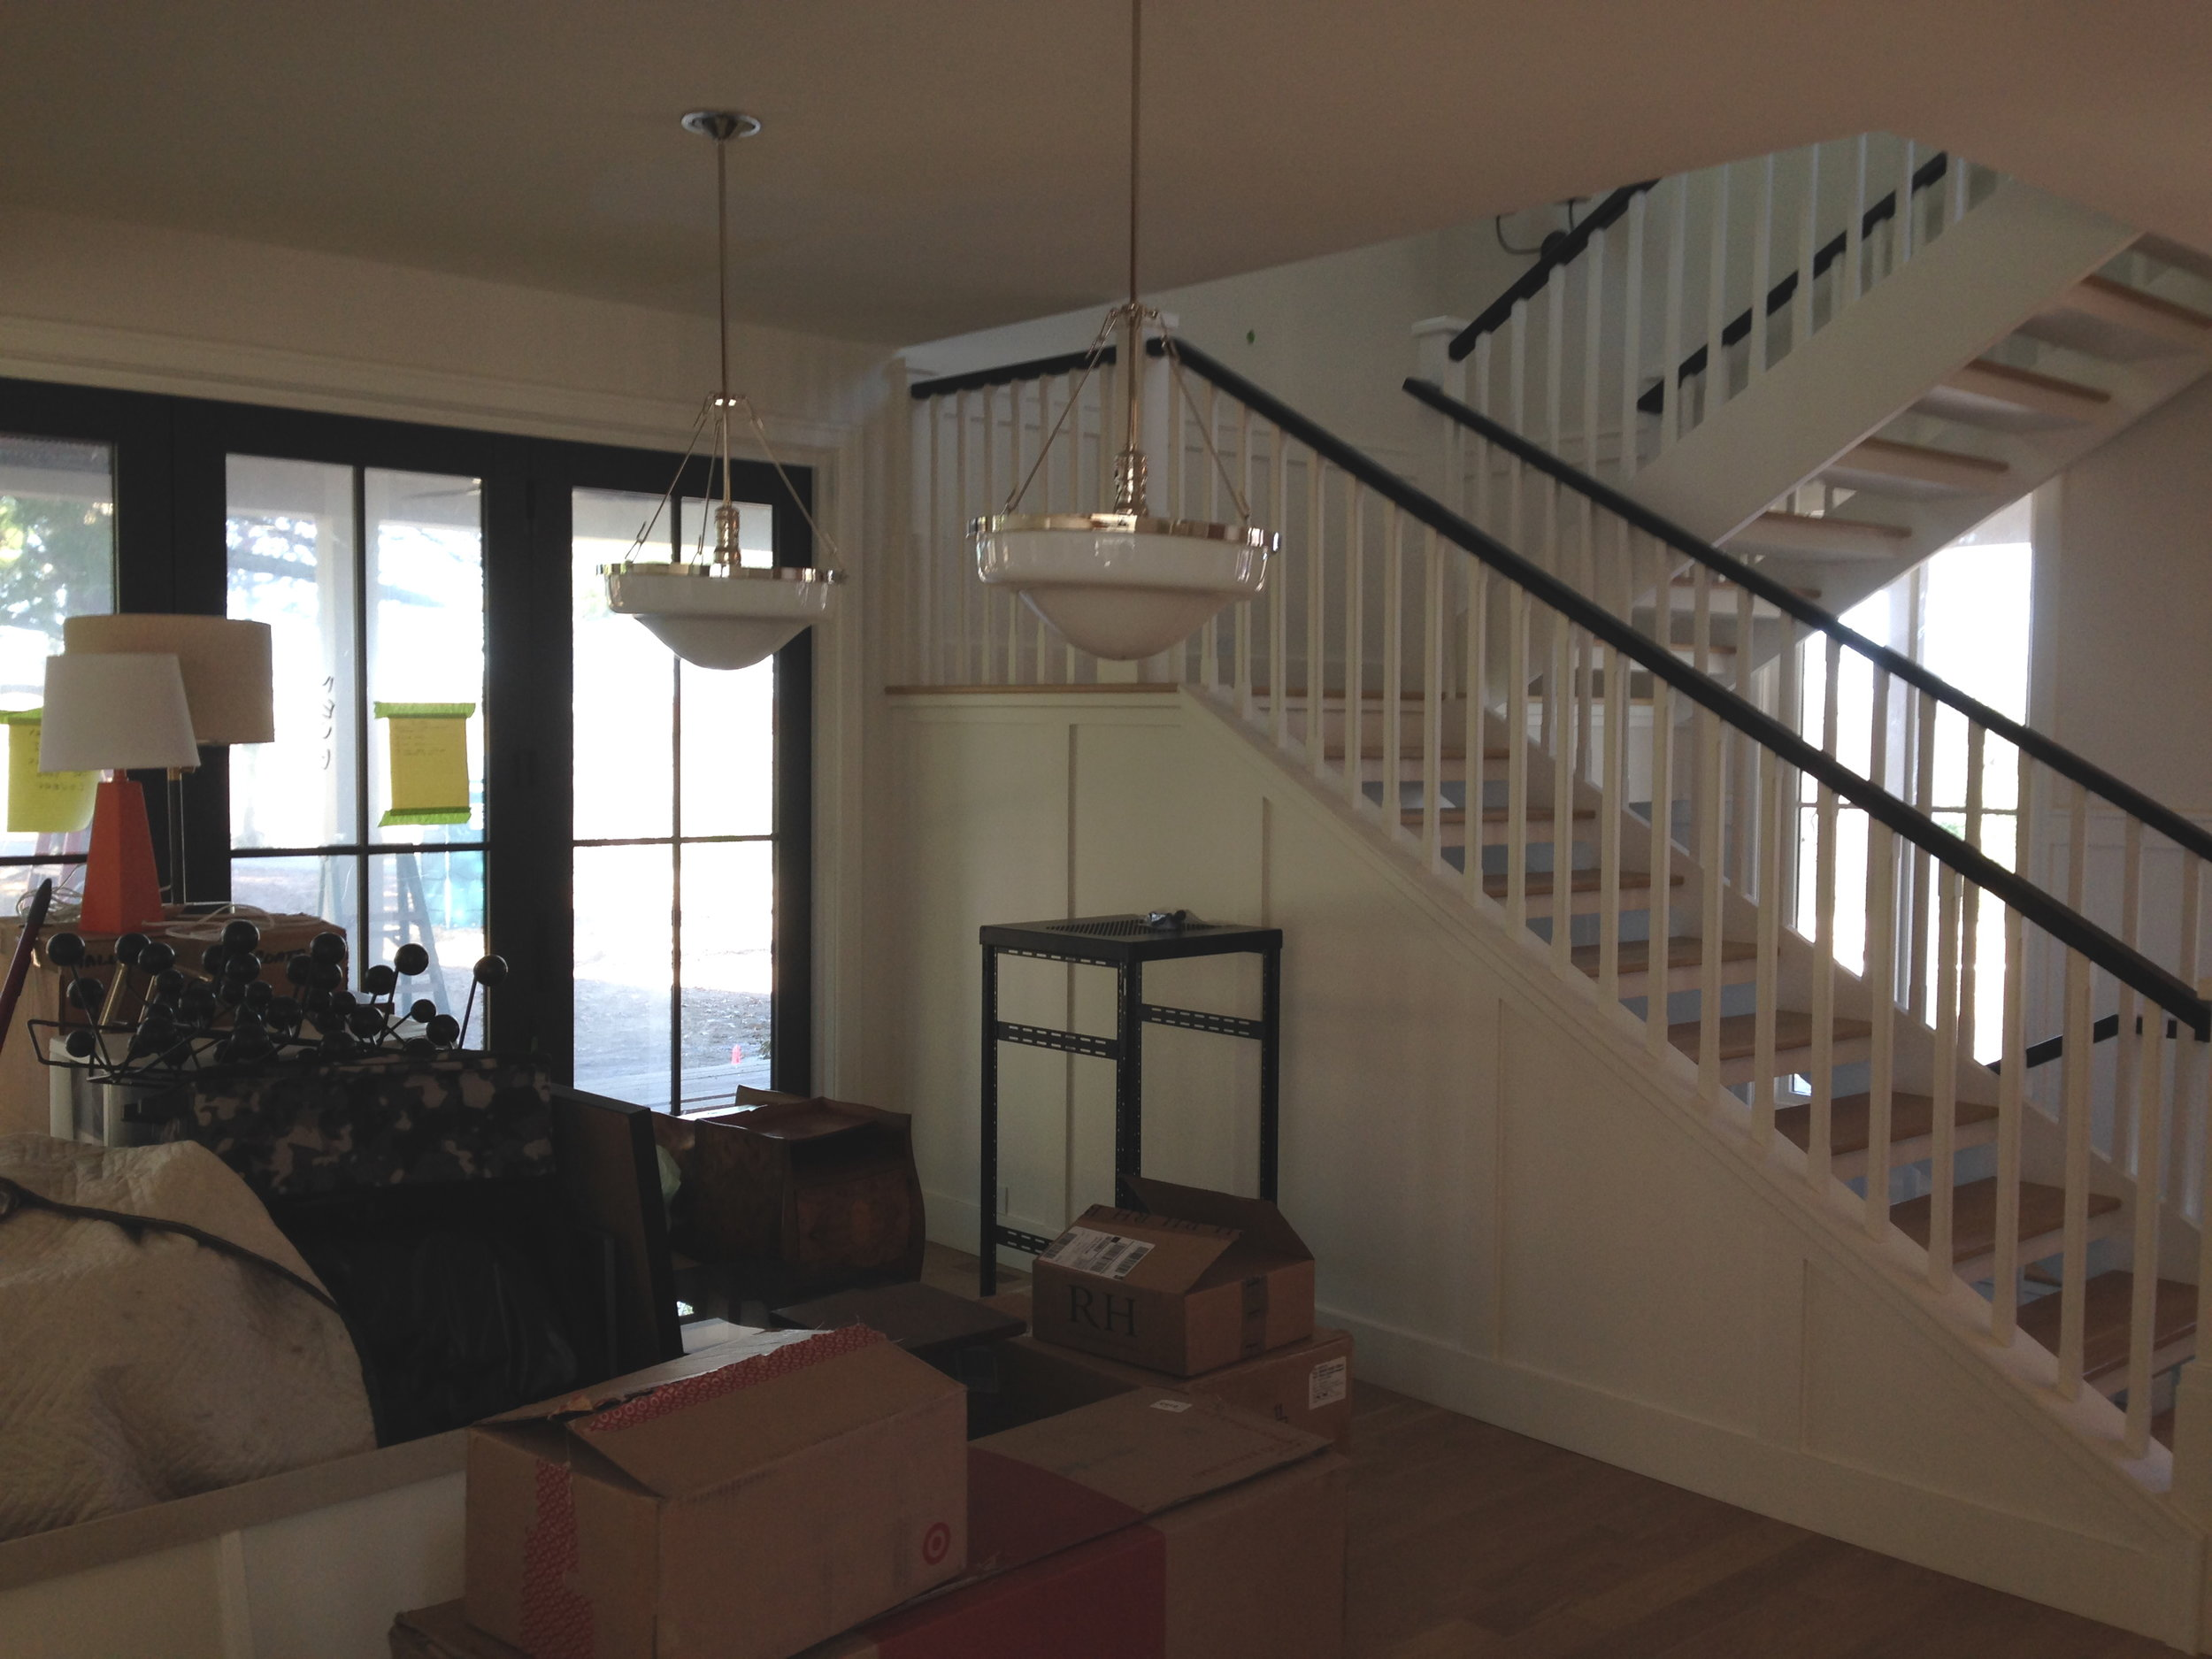 View of Dining Area and Stairs